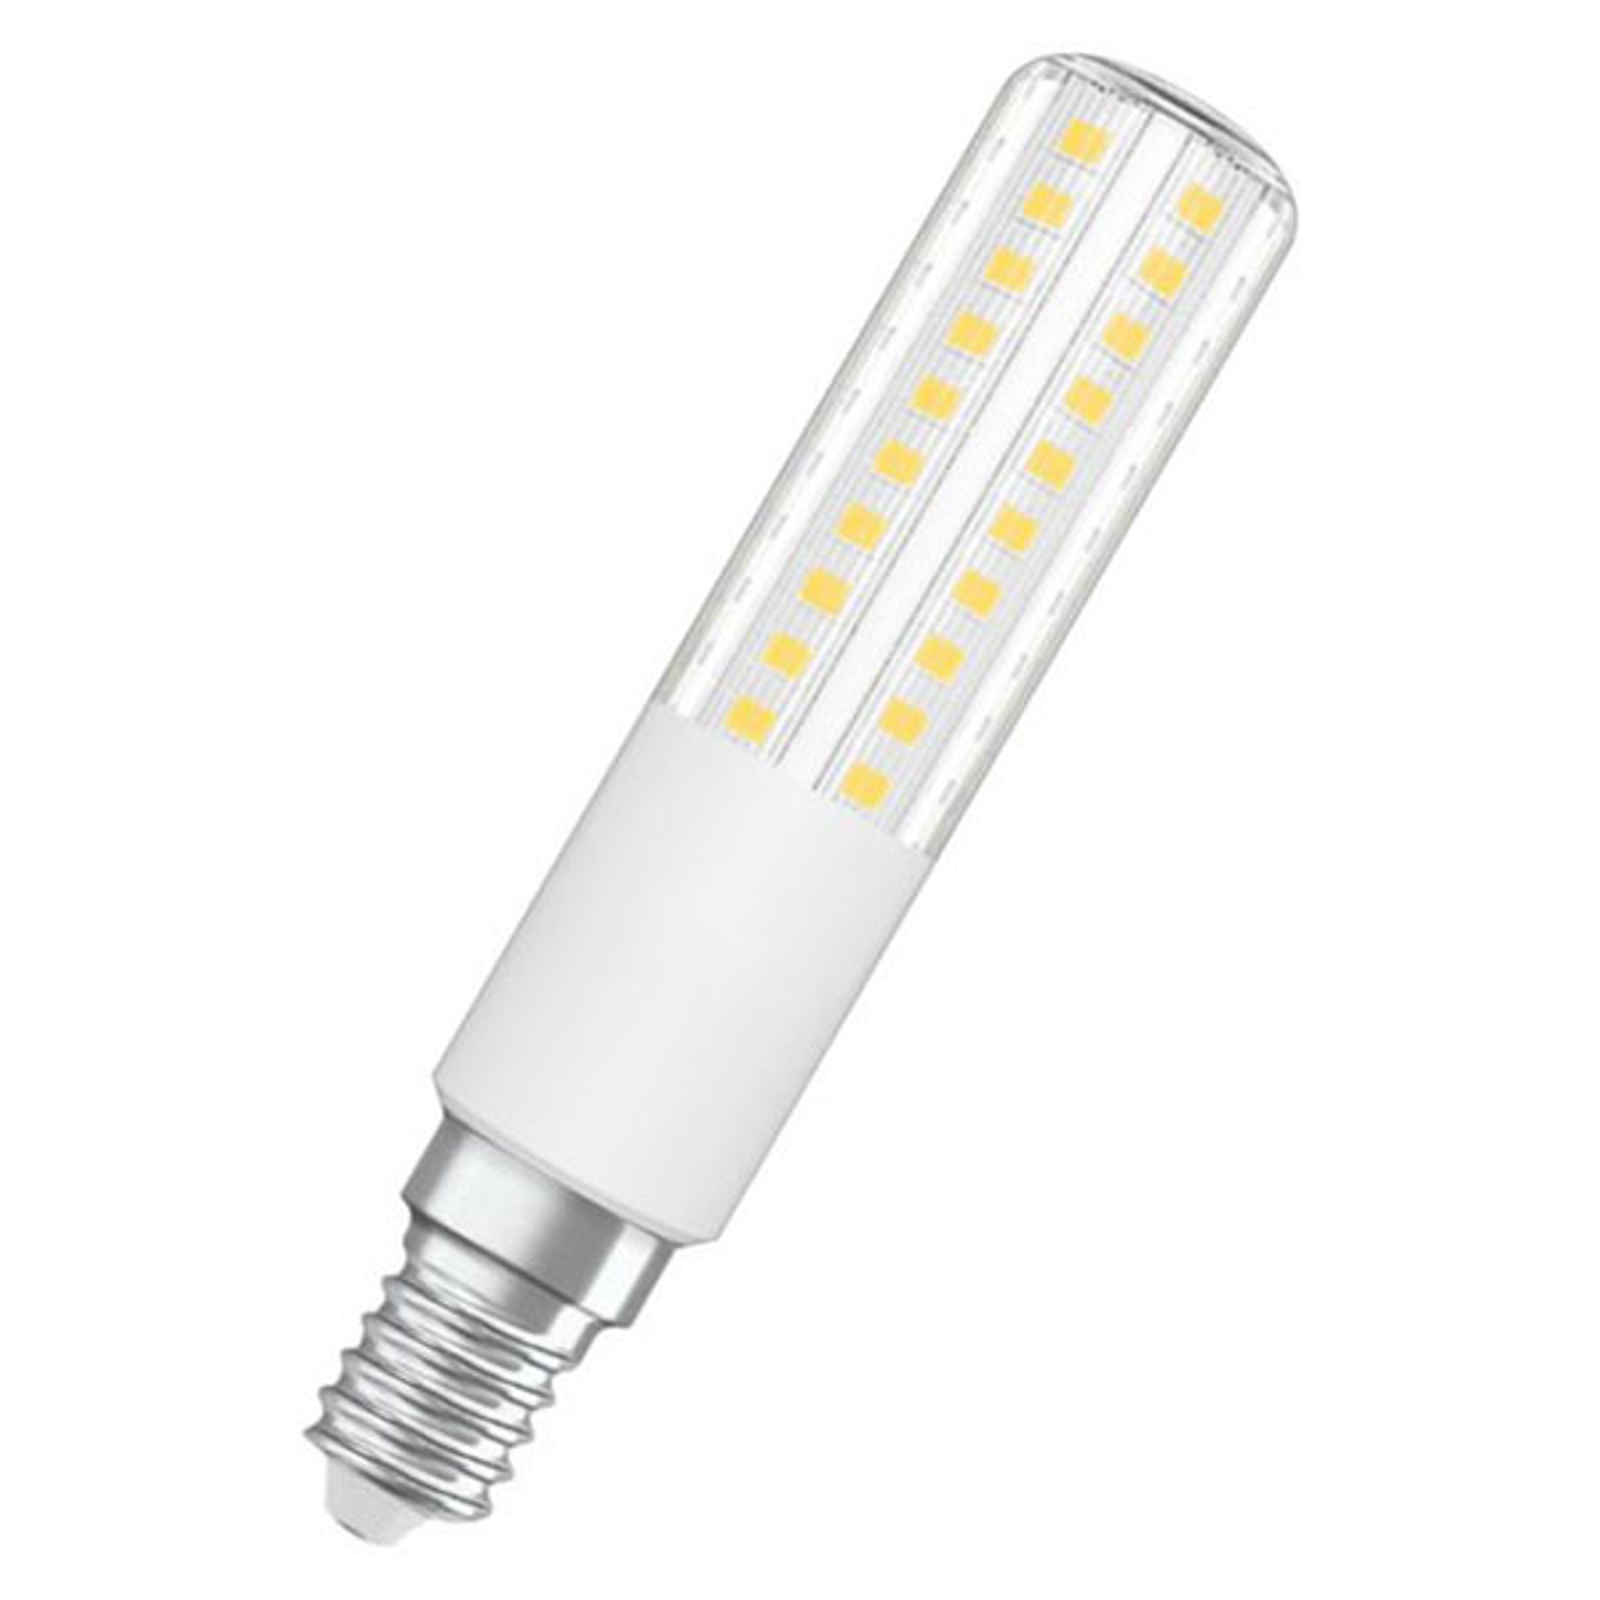 OSRAM LED-Lampe Special T E14 7W 2.700K dimmbar